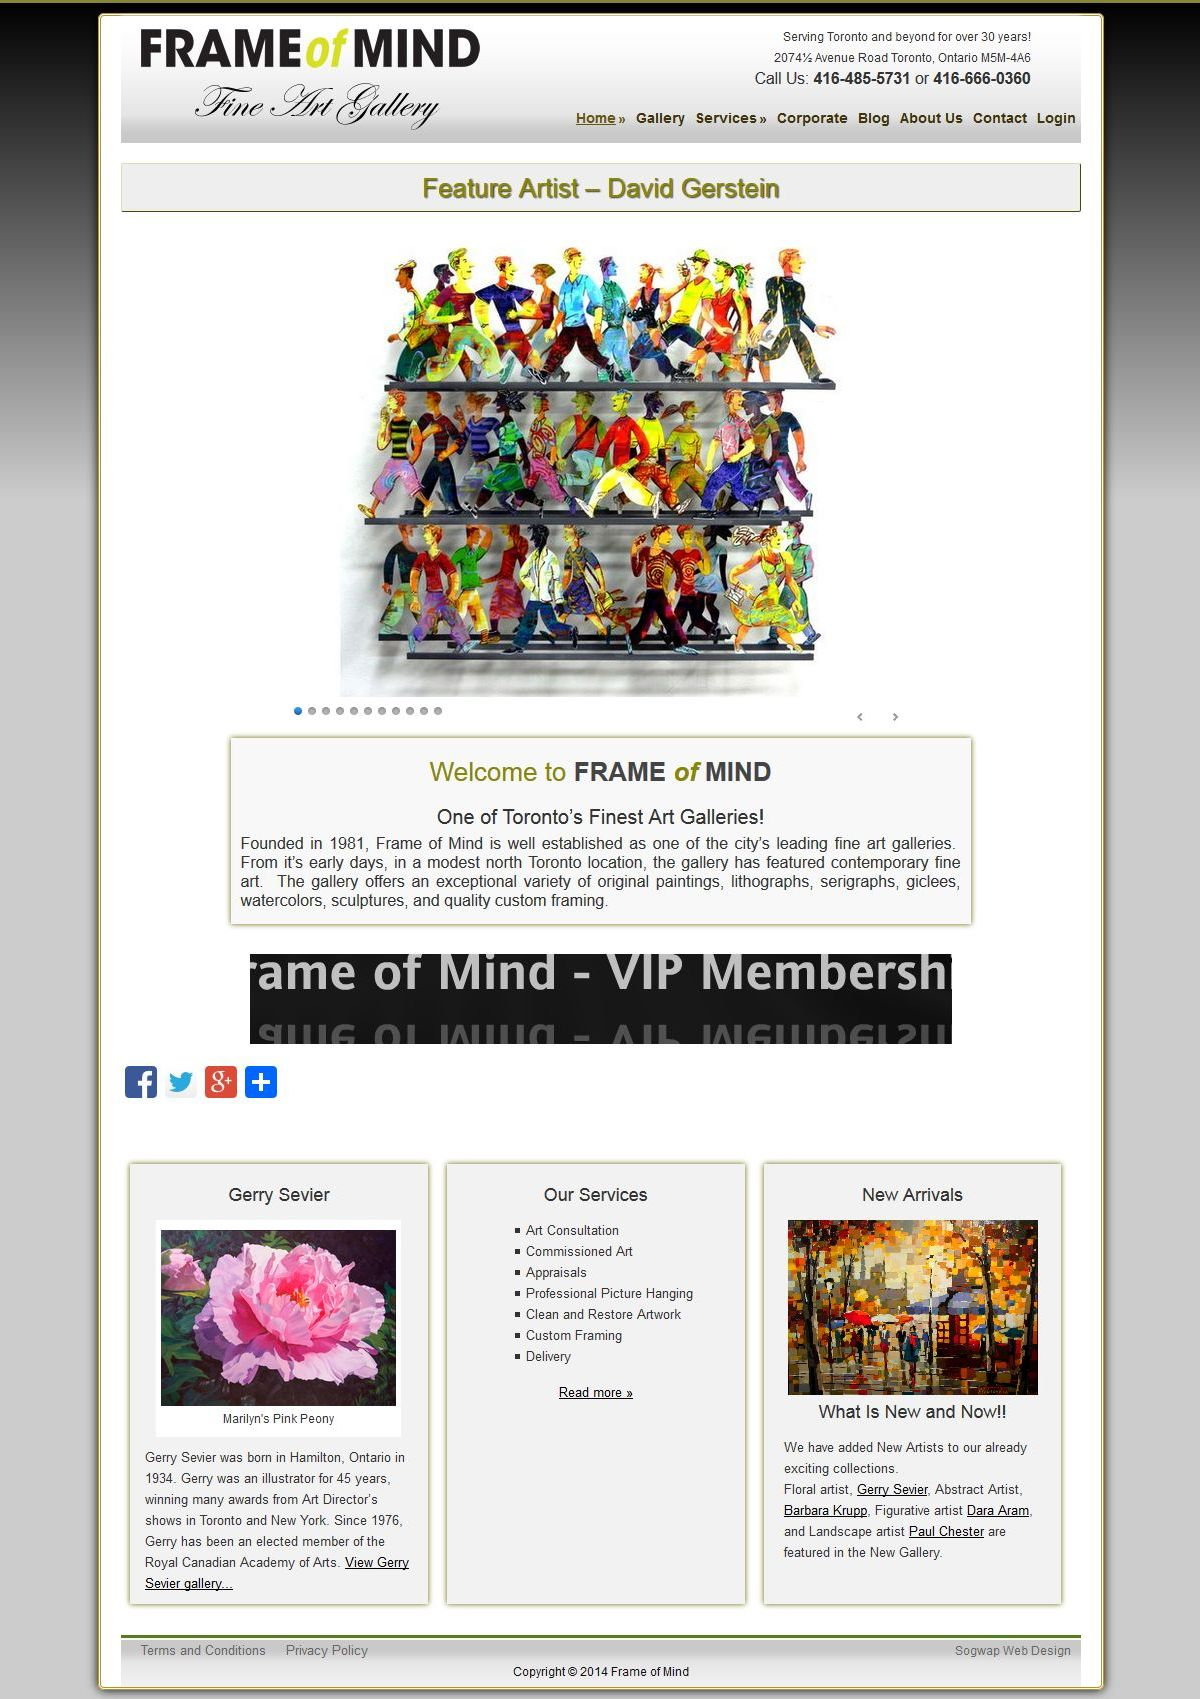 'Welcome to FRAME of MIND One of Toronto's Finest Art Galleries! I Toronto's Premier Art Gallery' - frameofmind_ca